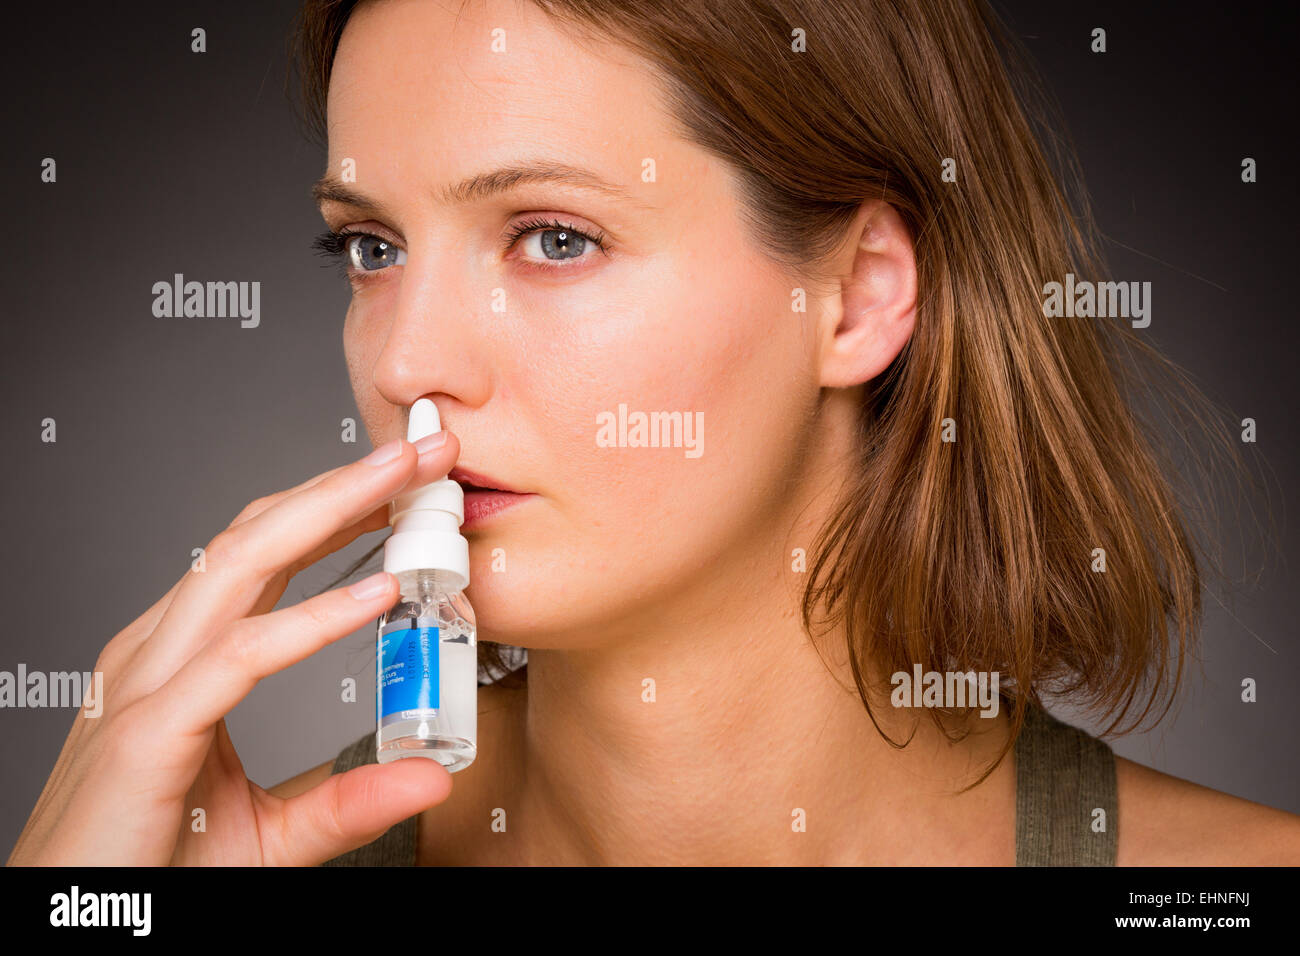 Woman using nasal spray for controlling rhinitis. - Stock Image